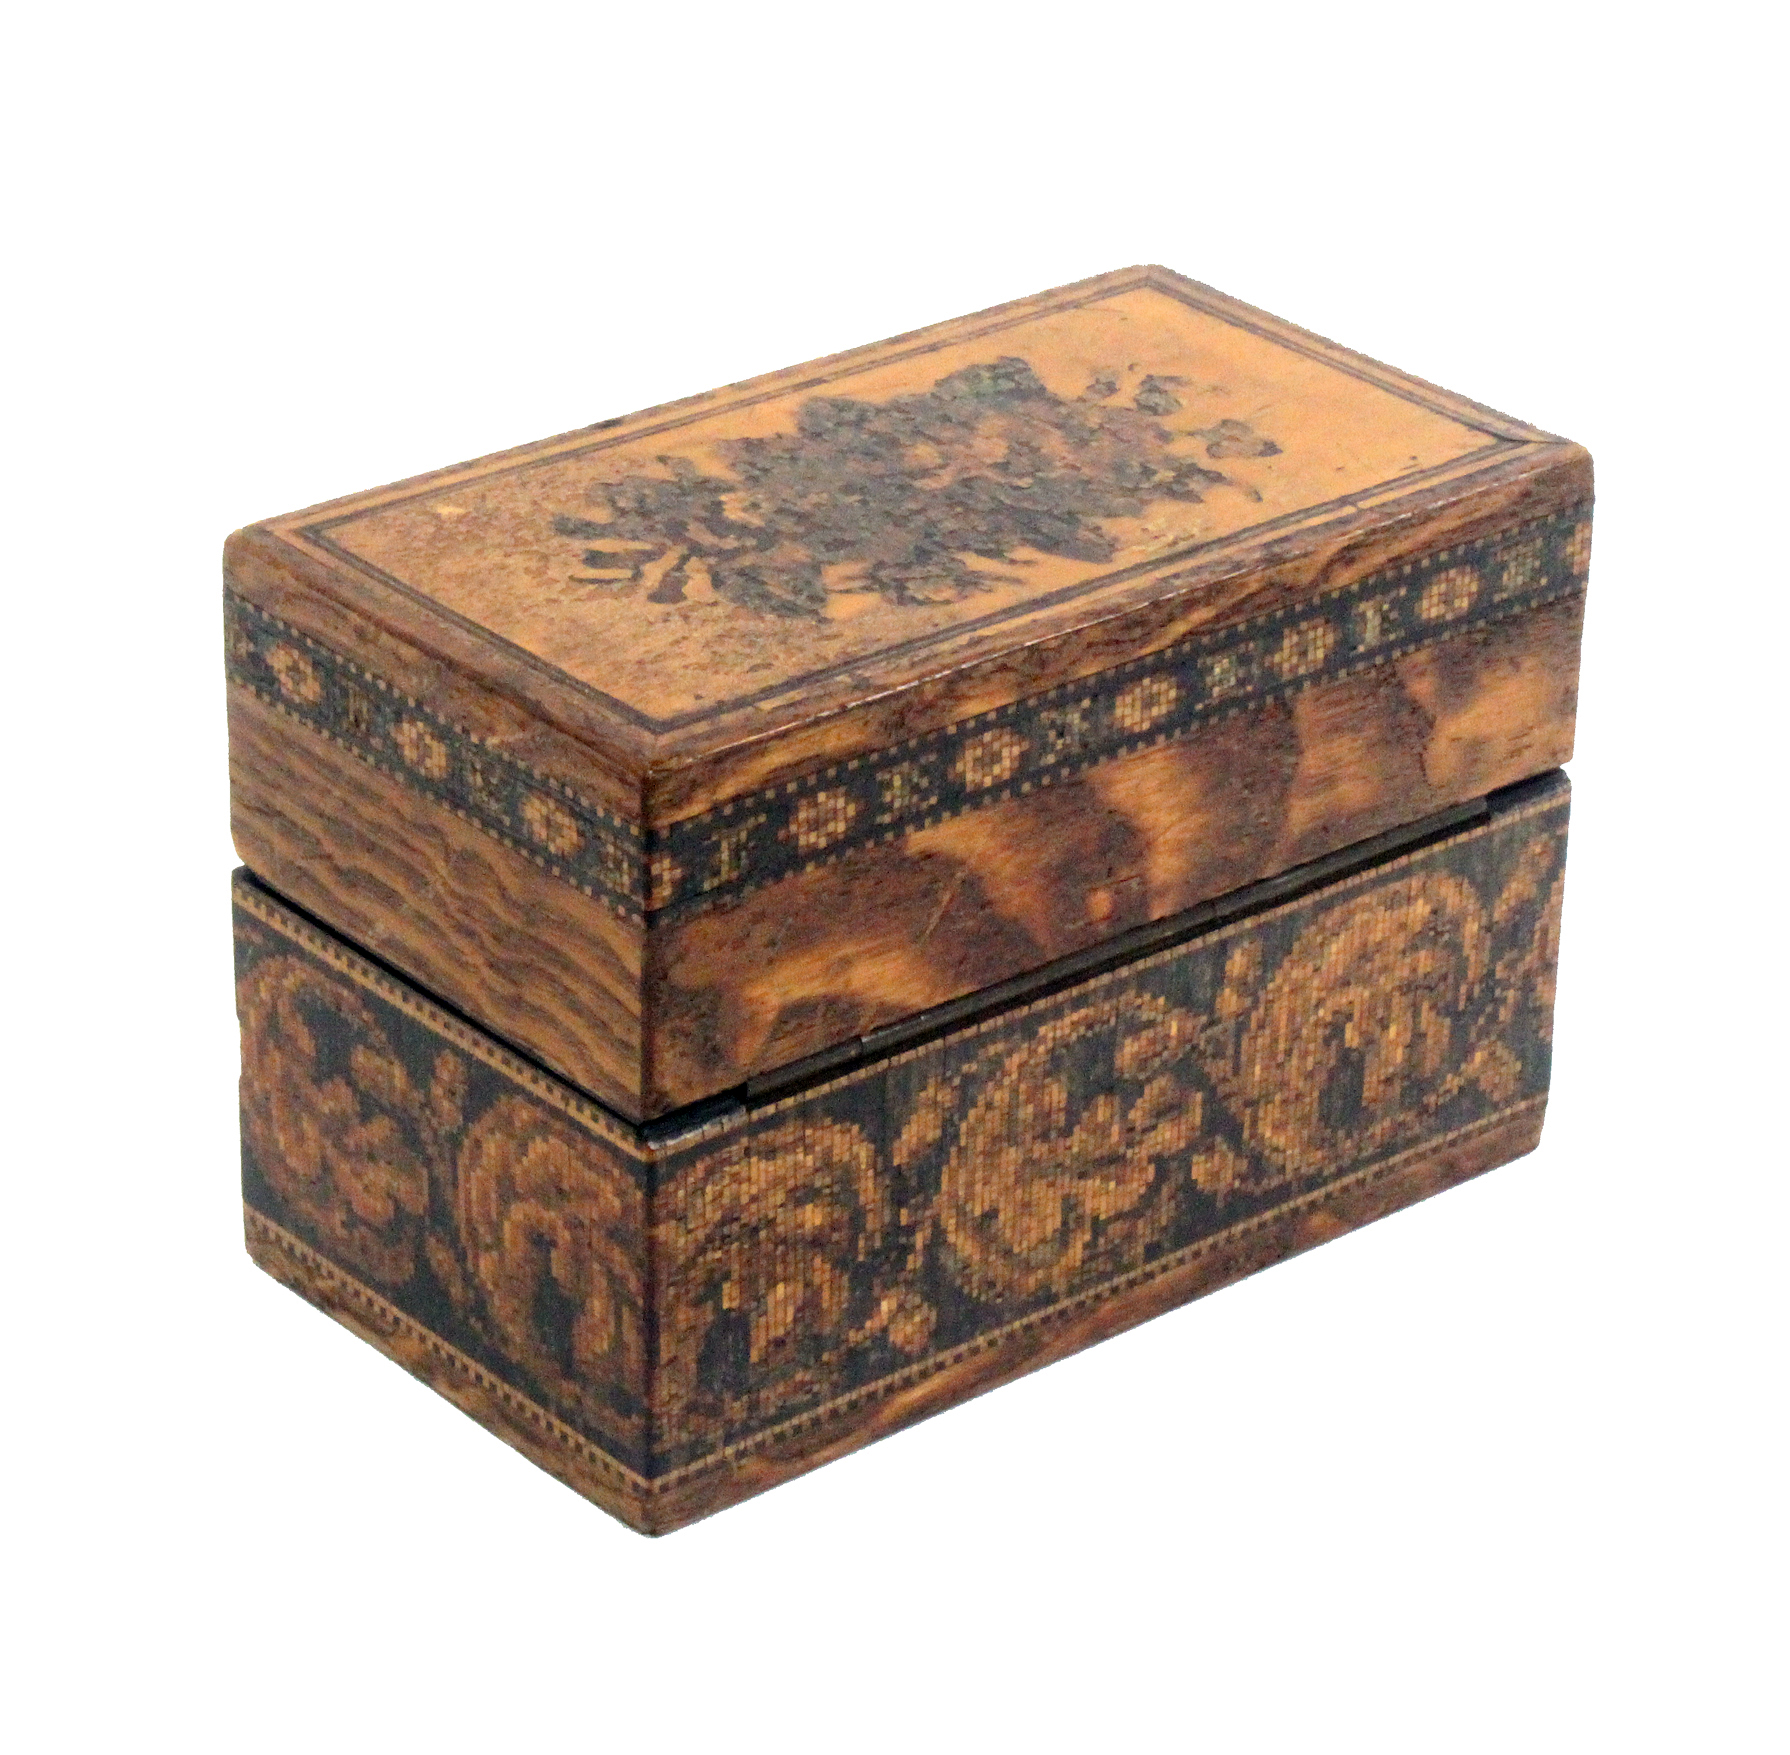 A Tunbridge ware box by Edmund Nye, the lid inset with a floral mosaic, the sides with a band of - Image 2 of 5